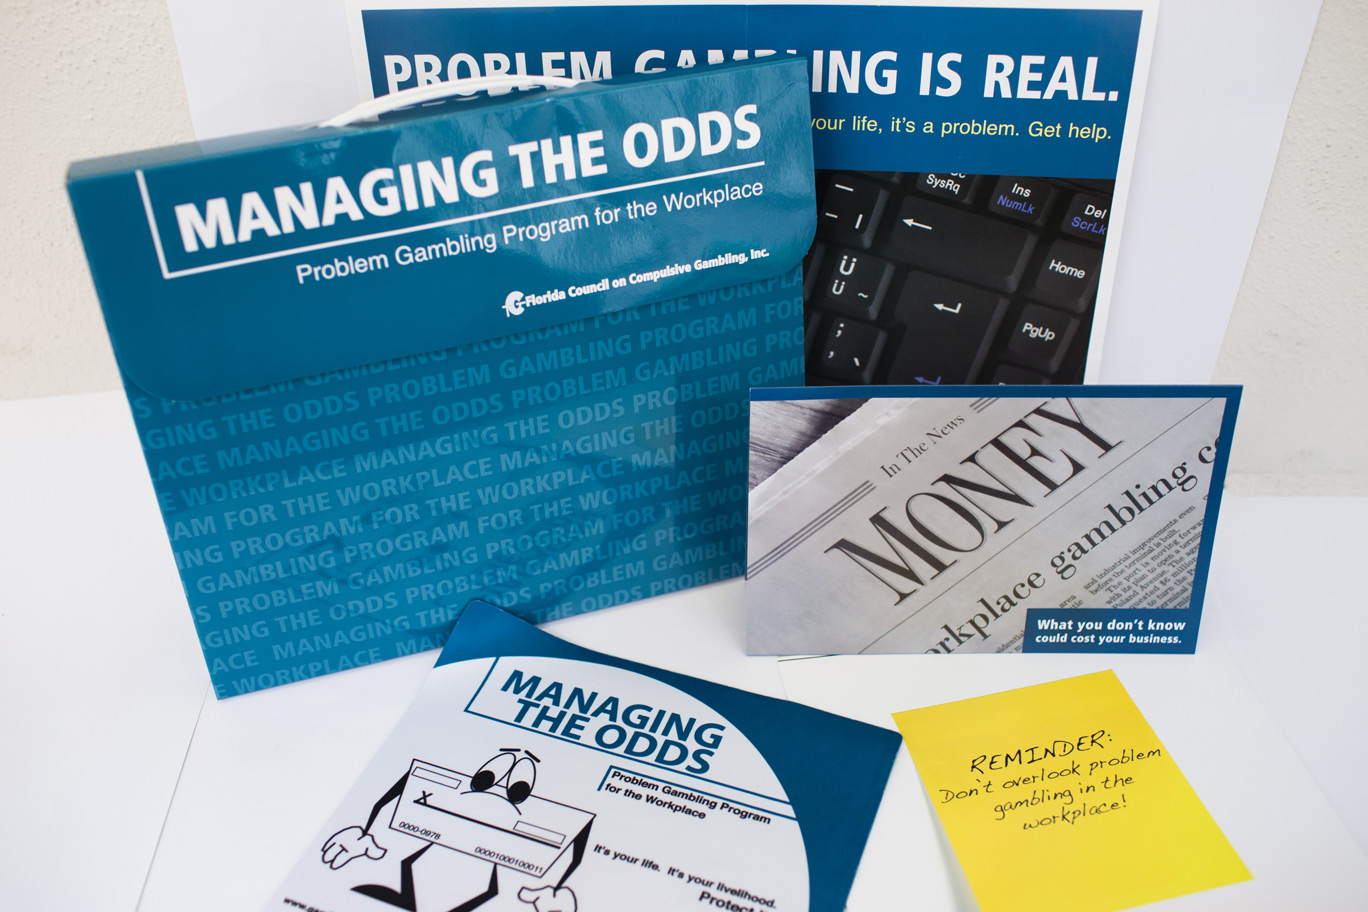 Is 2014 08 sports wagering guidelines that you cana t afford to overlook - Managing The Odds